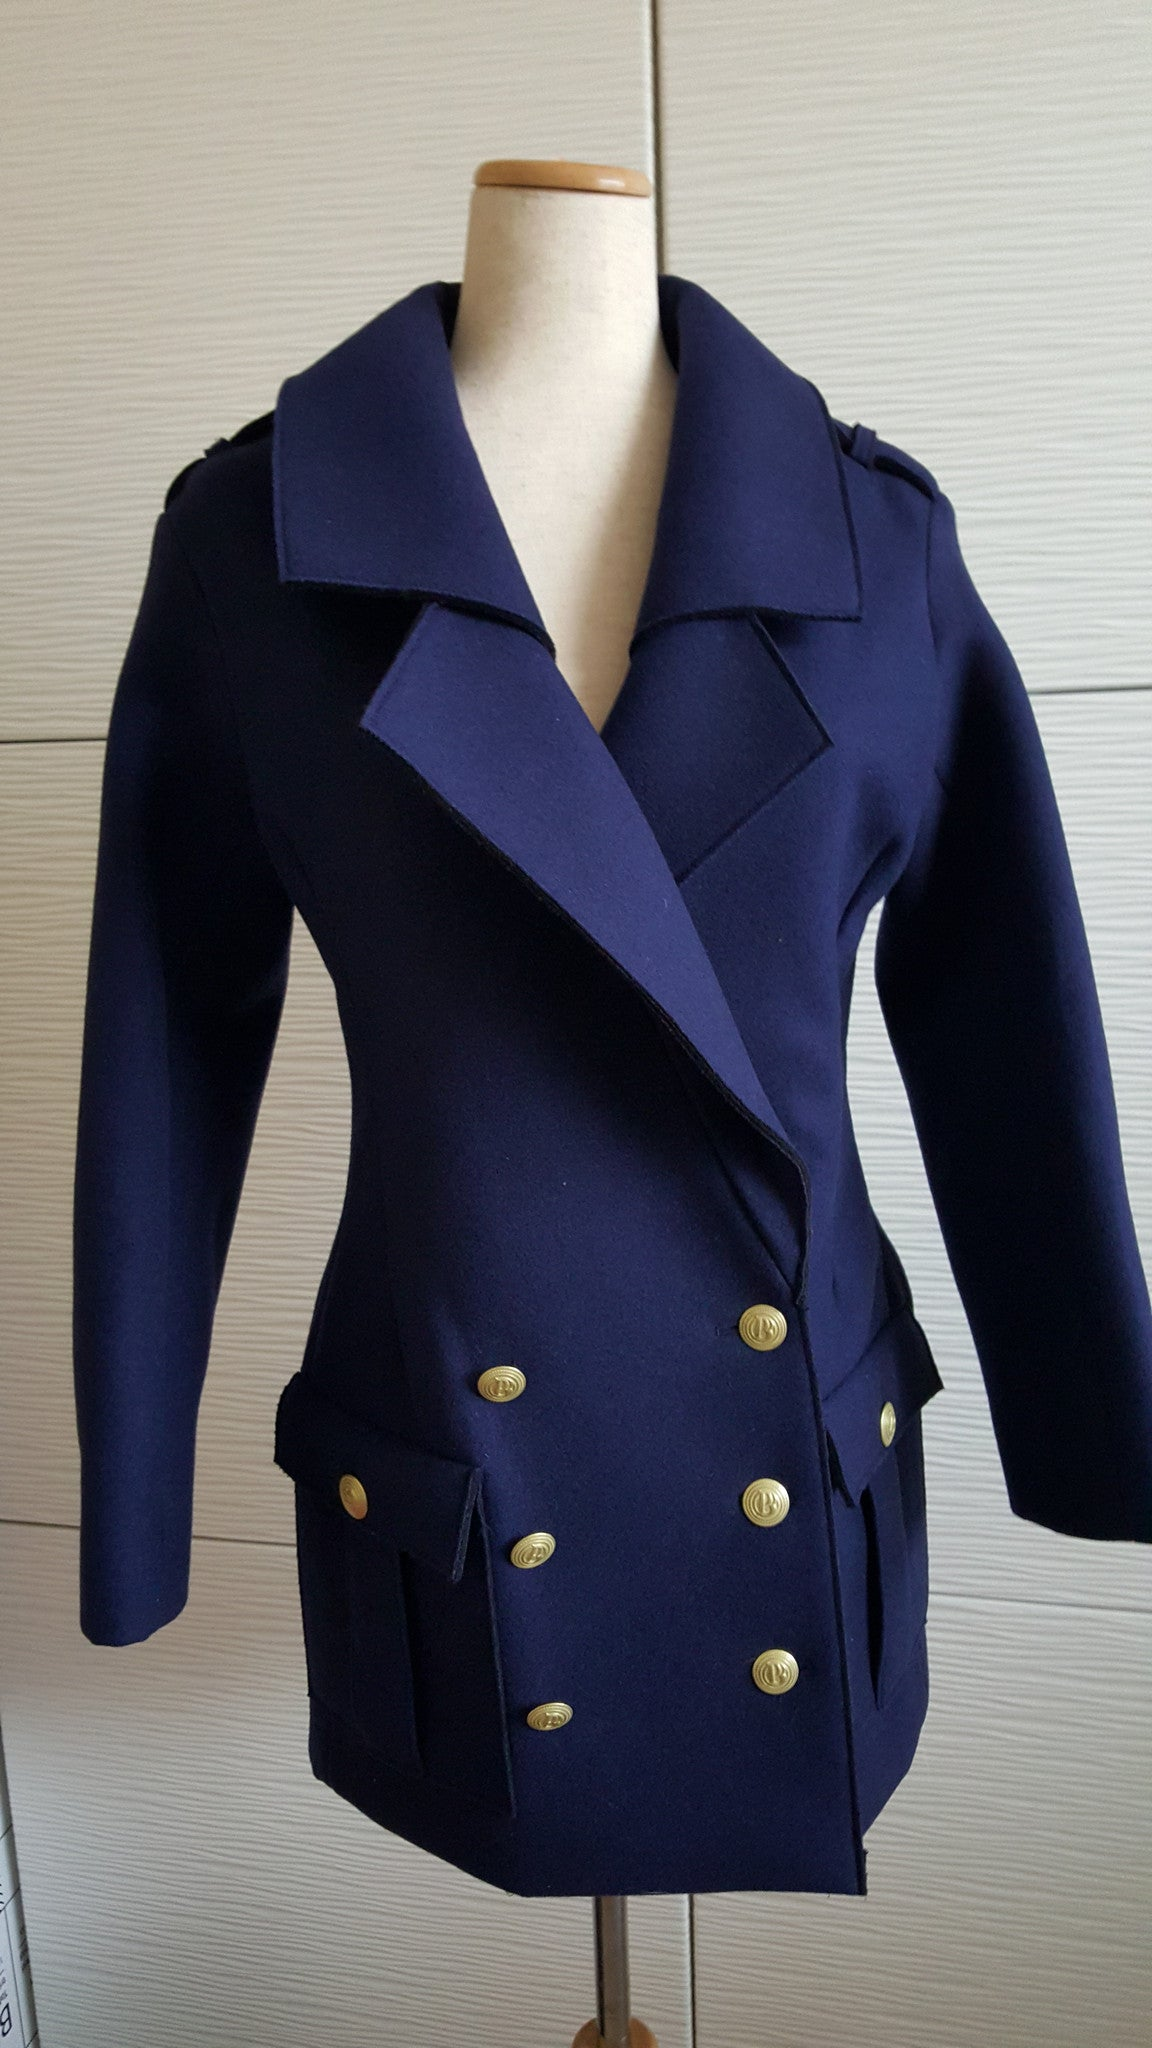 PIERRE BALMAIN DOUBLE BREASTED TWILL COAT - SIZE 4